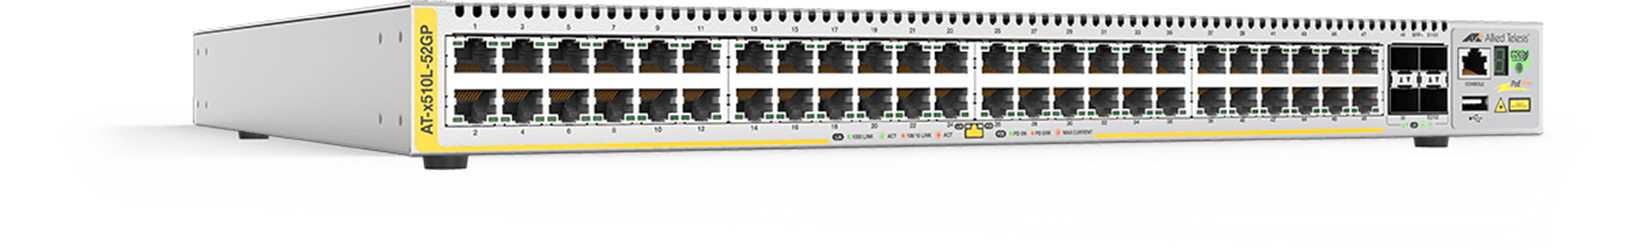 AT-x510L series - Advanced Gigabit Layer 3 Stackable Switch